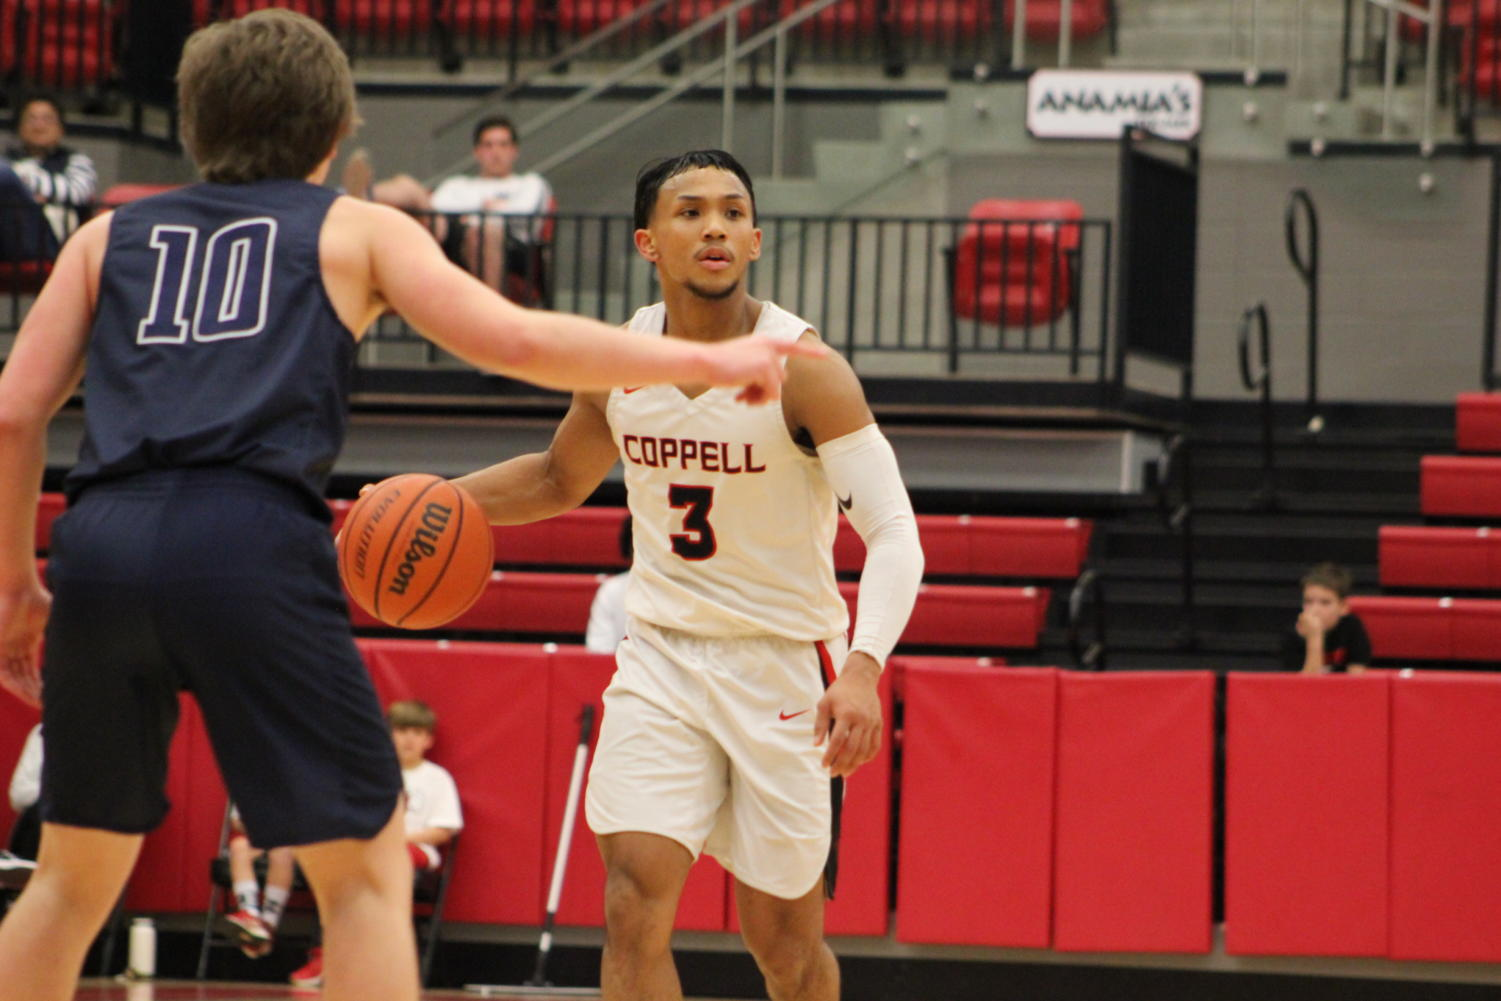 Coppell High School senior Tariq Aman handles the ball during the game in the CHS Arena against Flower Mound. The Cowboys beat the Jaguars, 61-60.